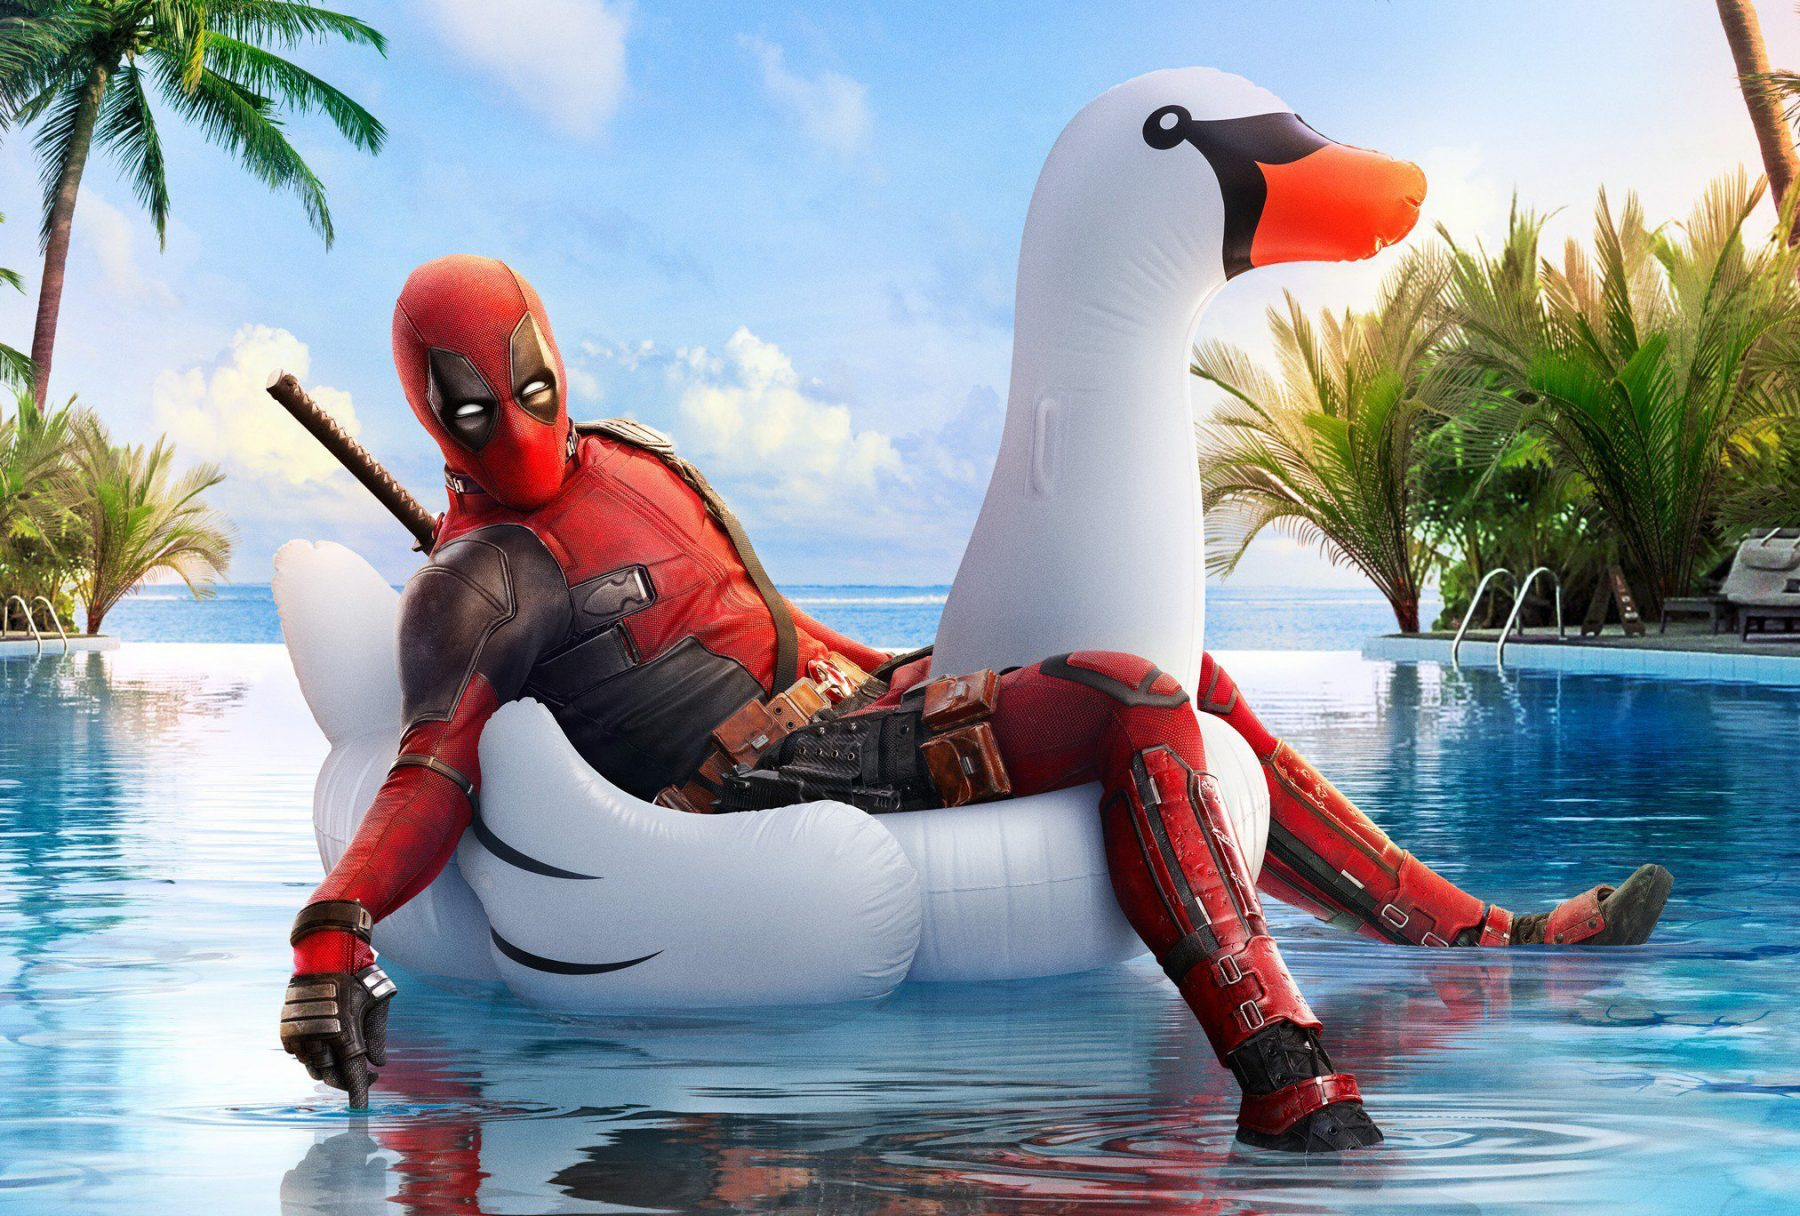 Deadpool 2 Hd Wallpapers 7wallpapers Net